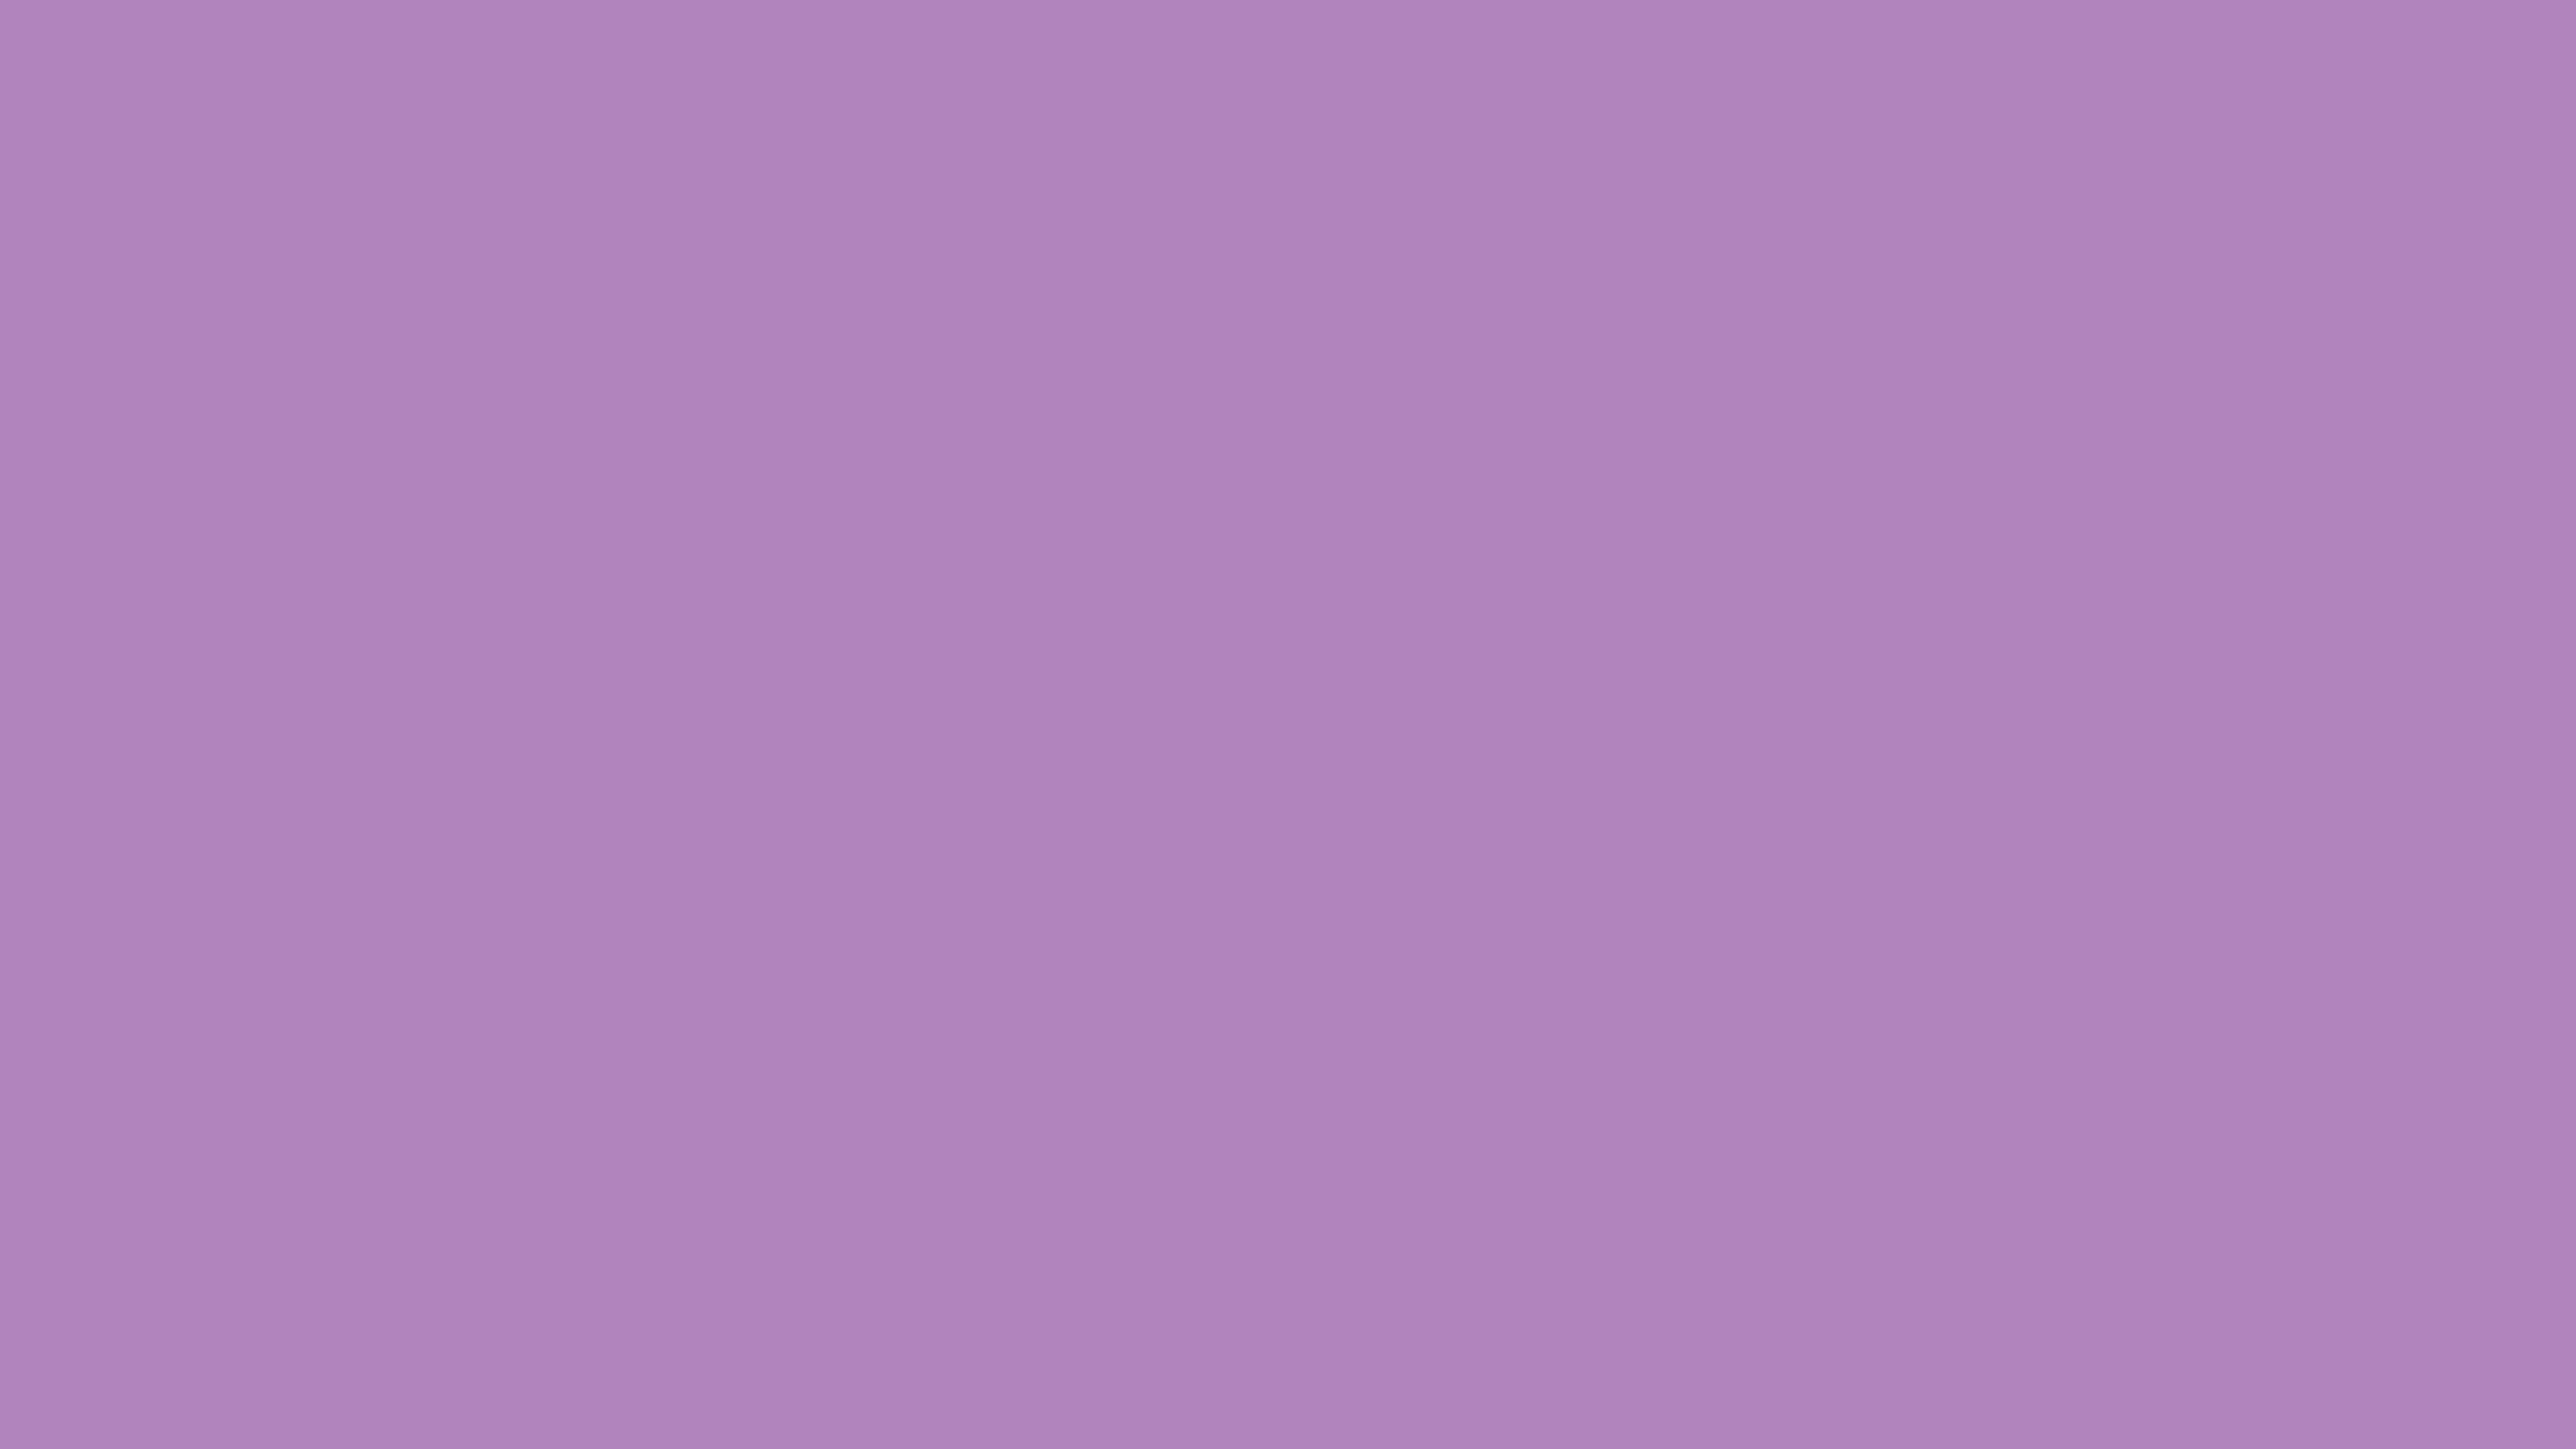 5120x2880-african-violet-solid-color-background Lilac Color